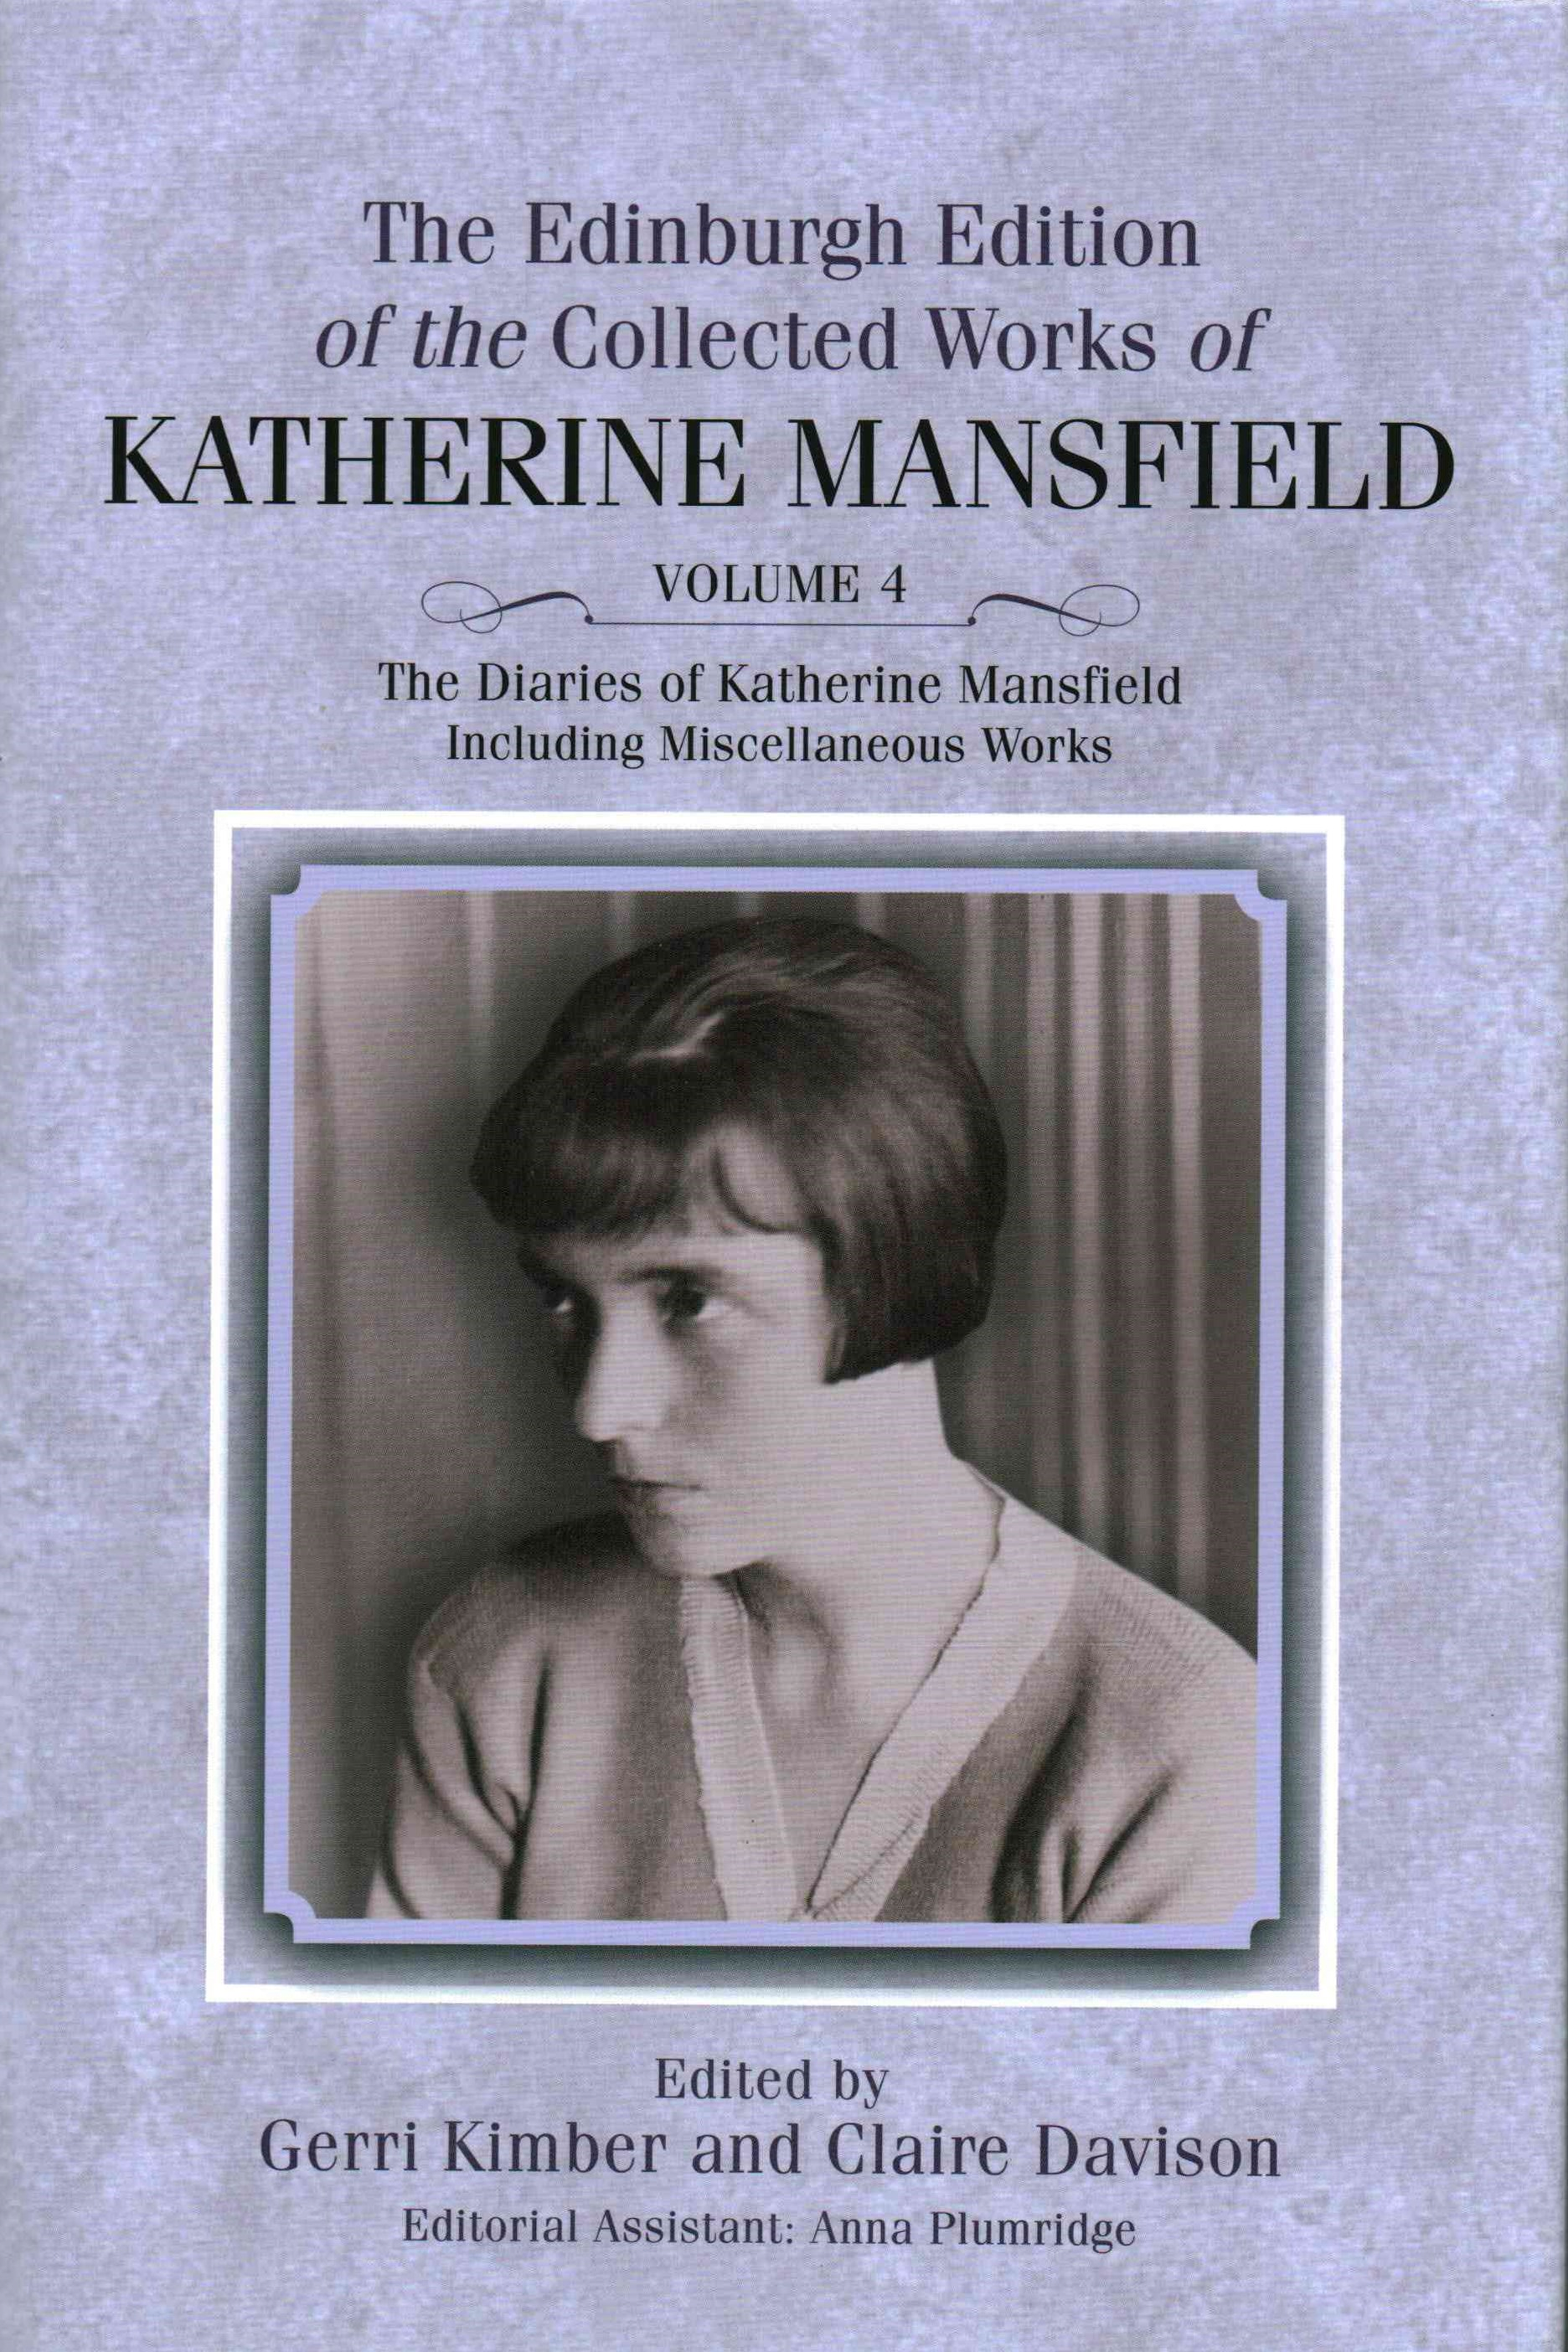 The Diaries of Katherine Mansfield